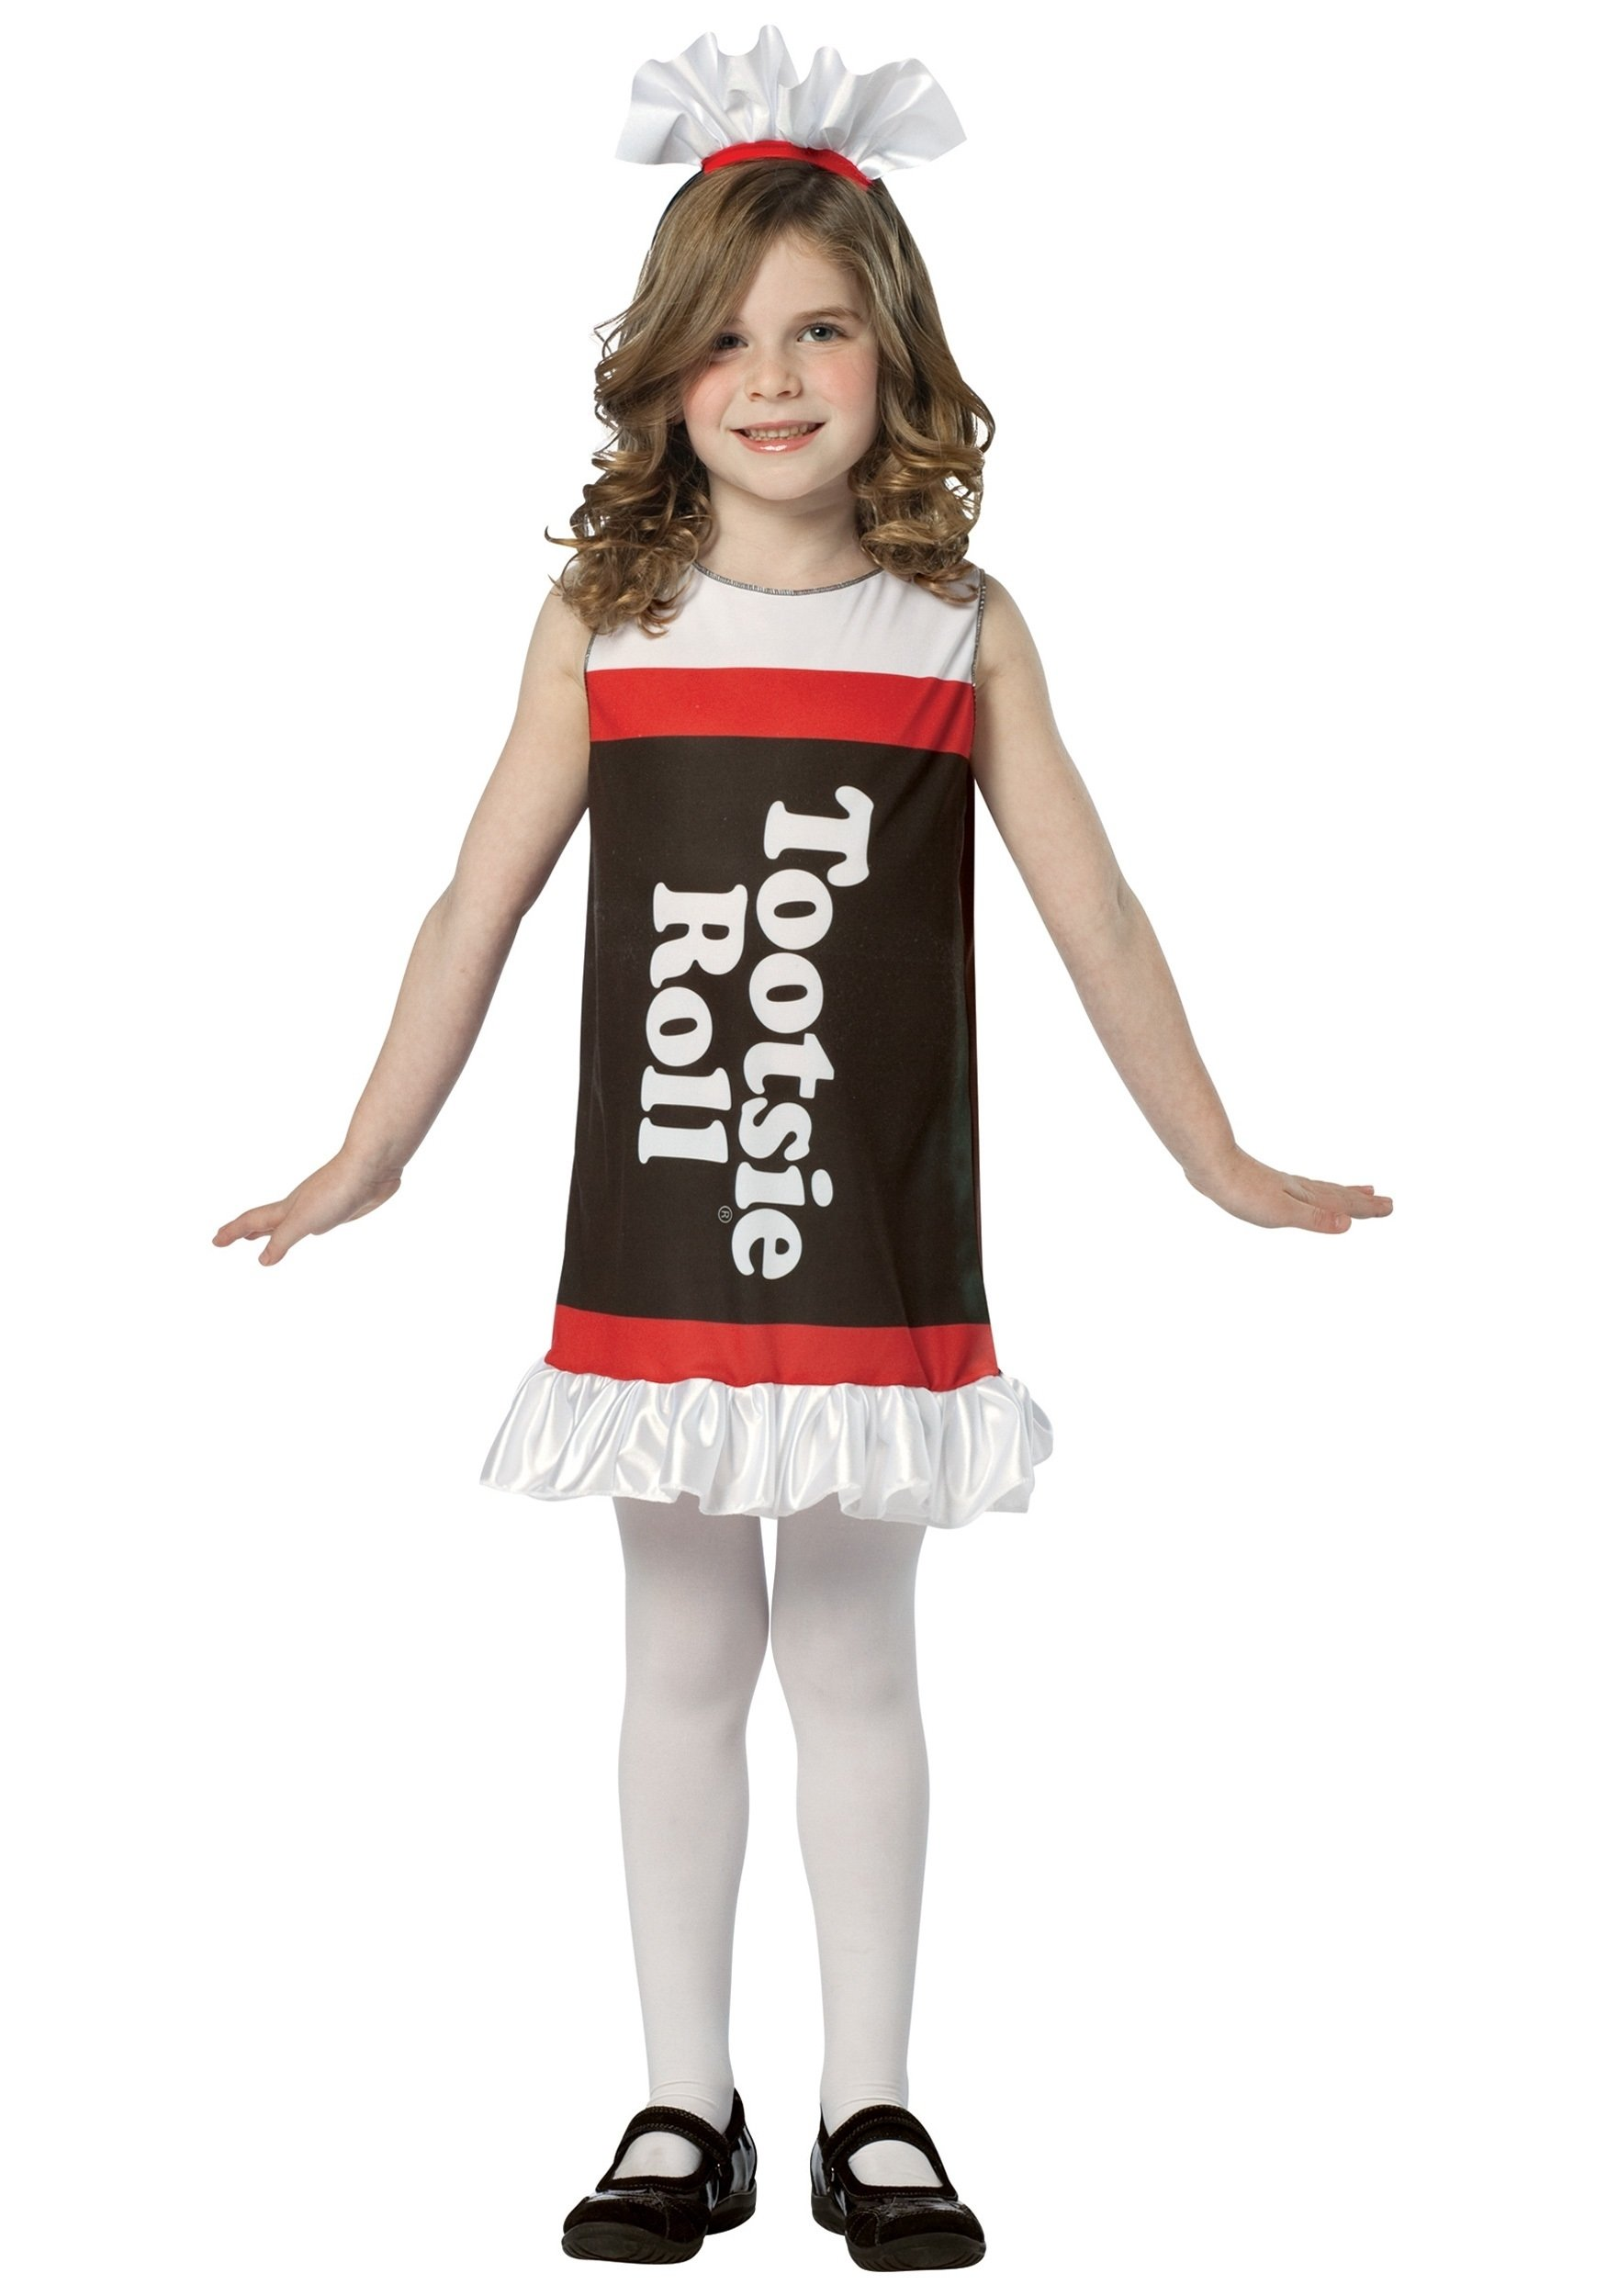 10 Pretty Unique Female Halloween Costume Ideas girls sweet tootsie roll dress funny costumes candy costumes